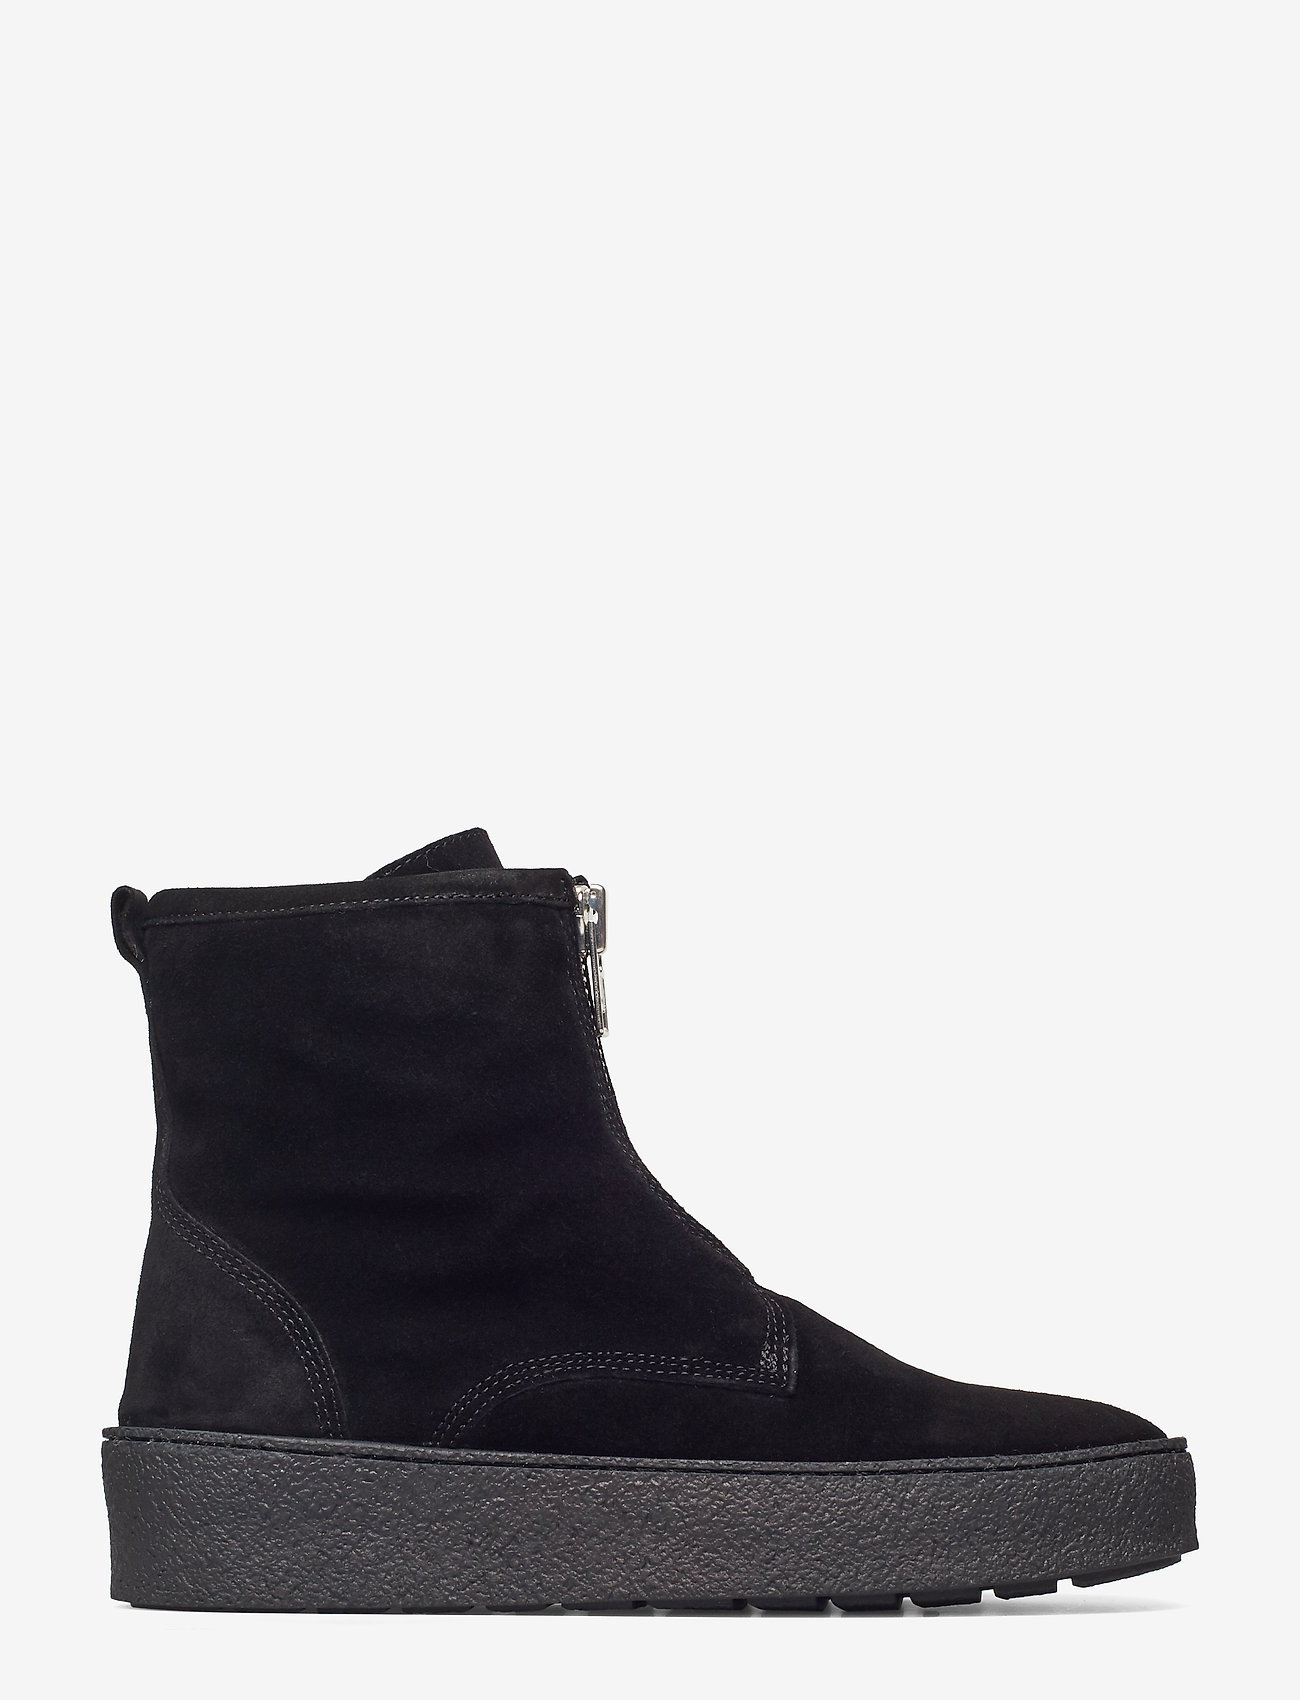 Billi Bi - SHOES - flate ankelstøvletter - black sue/silver/bl sole 503 - 1